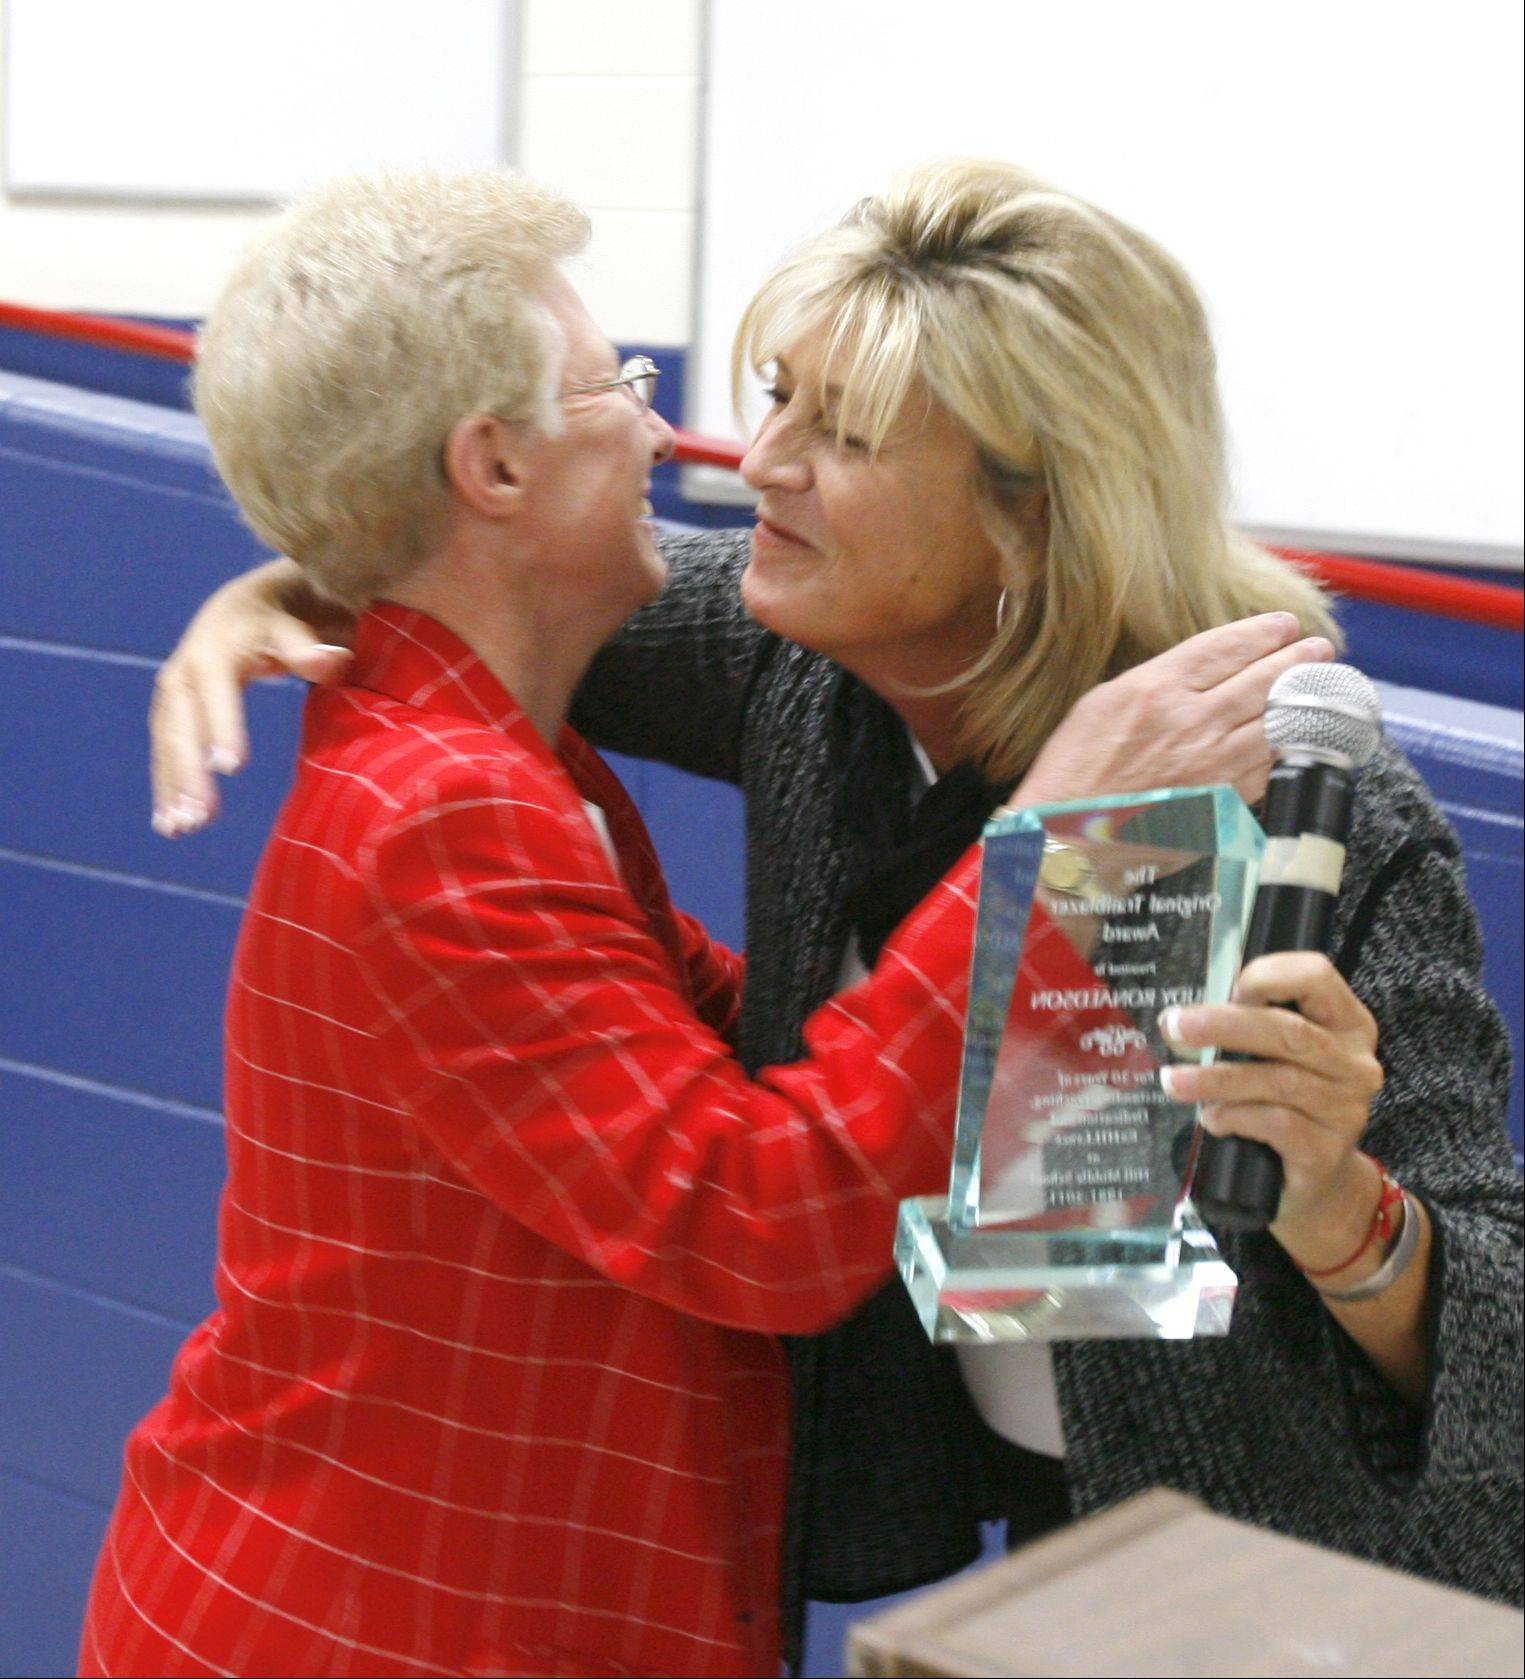 Teacher Judy Ronaldson, left, is acknowledged by Superintendent Kathy Birkett, right, for her service during the 30th Anniversary Celebration Breakfast at Thayer J. Hill Middle School in Naperville.